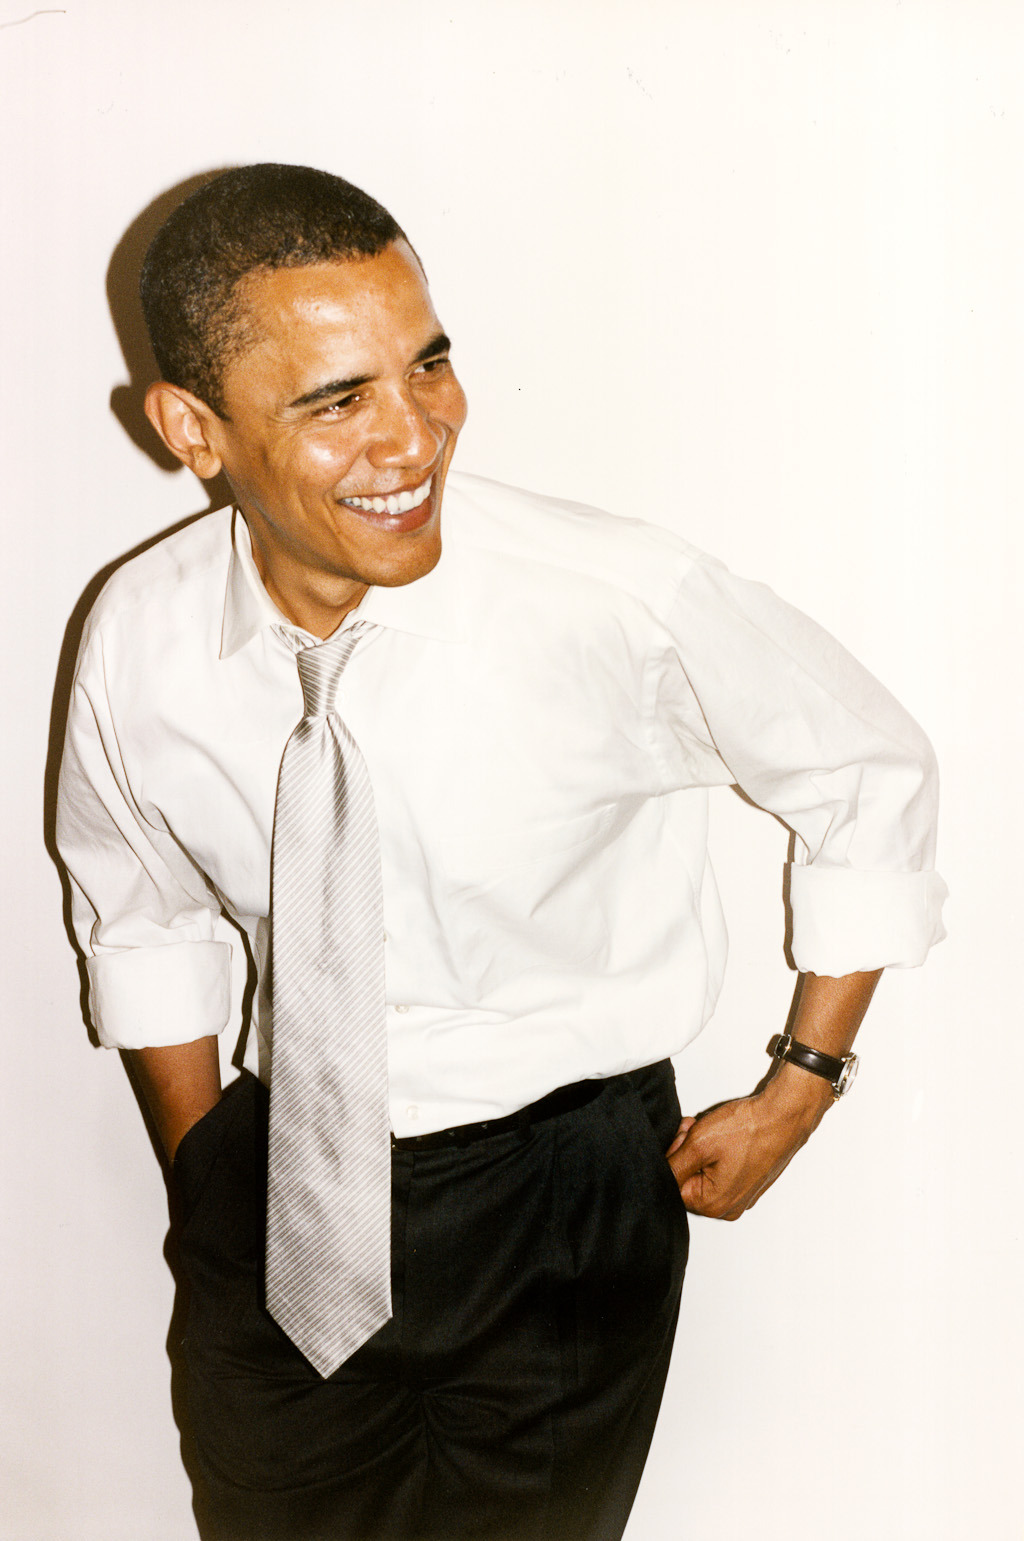 terrysdiary:  Obama at my studio #4